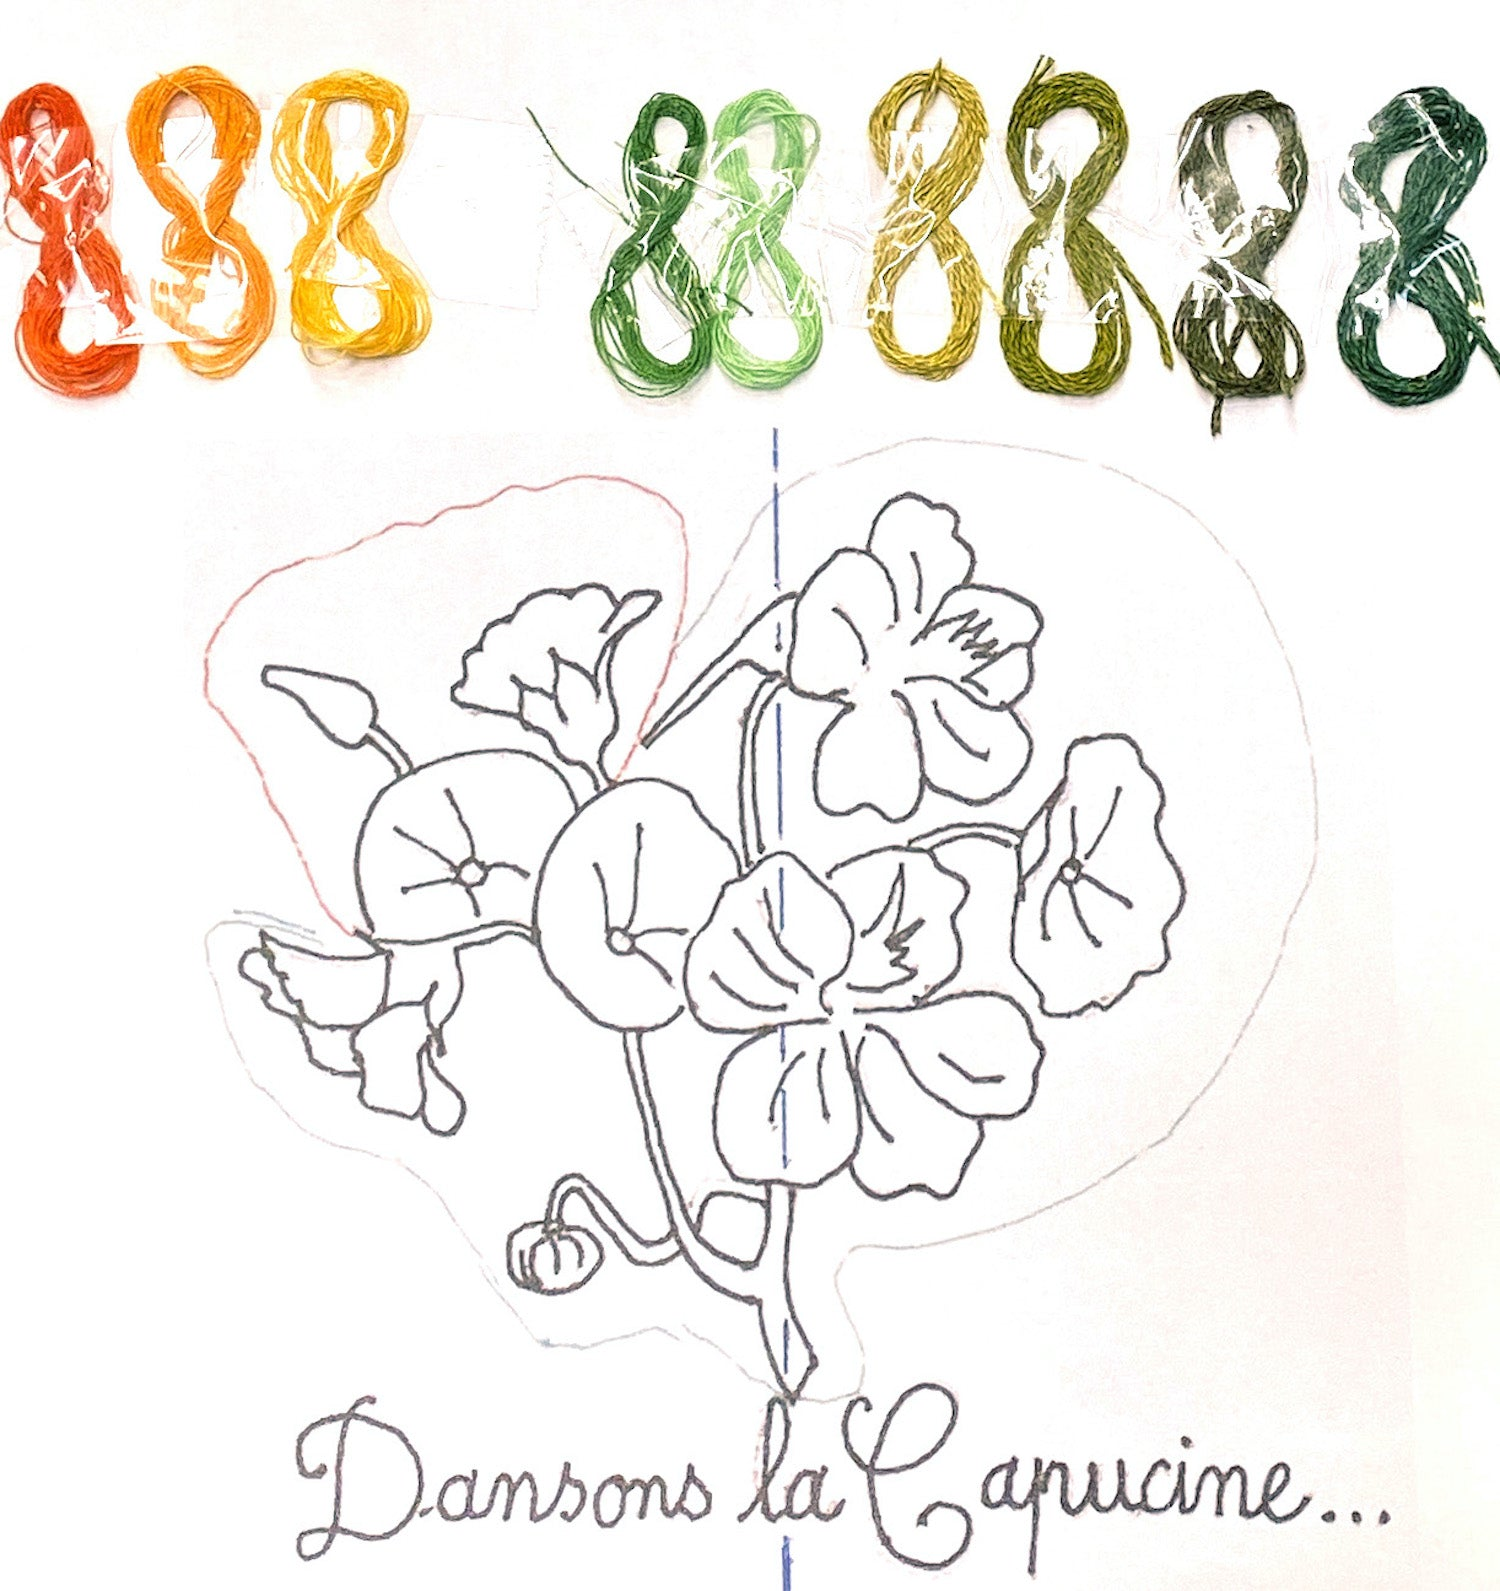 Flower embroidery design, the story of our brand and know-how, the Charlotte sy Dimby design process